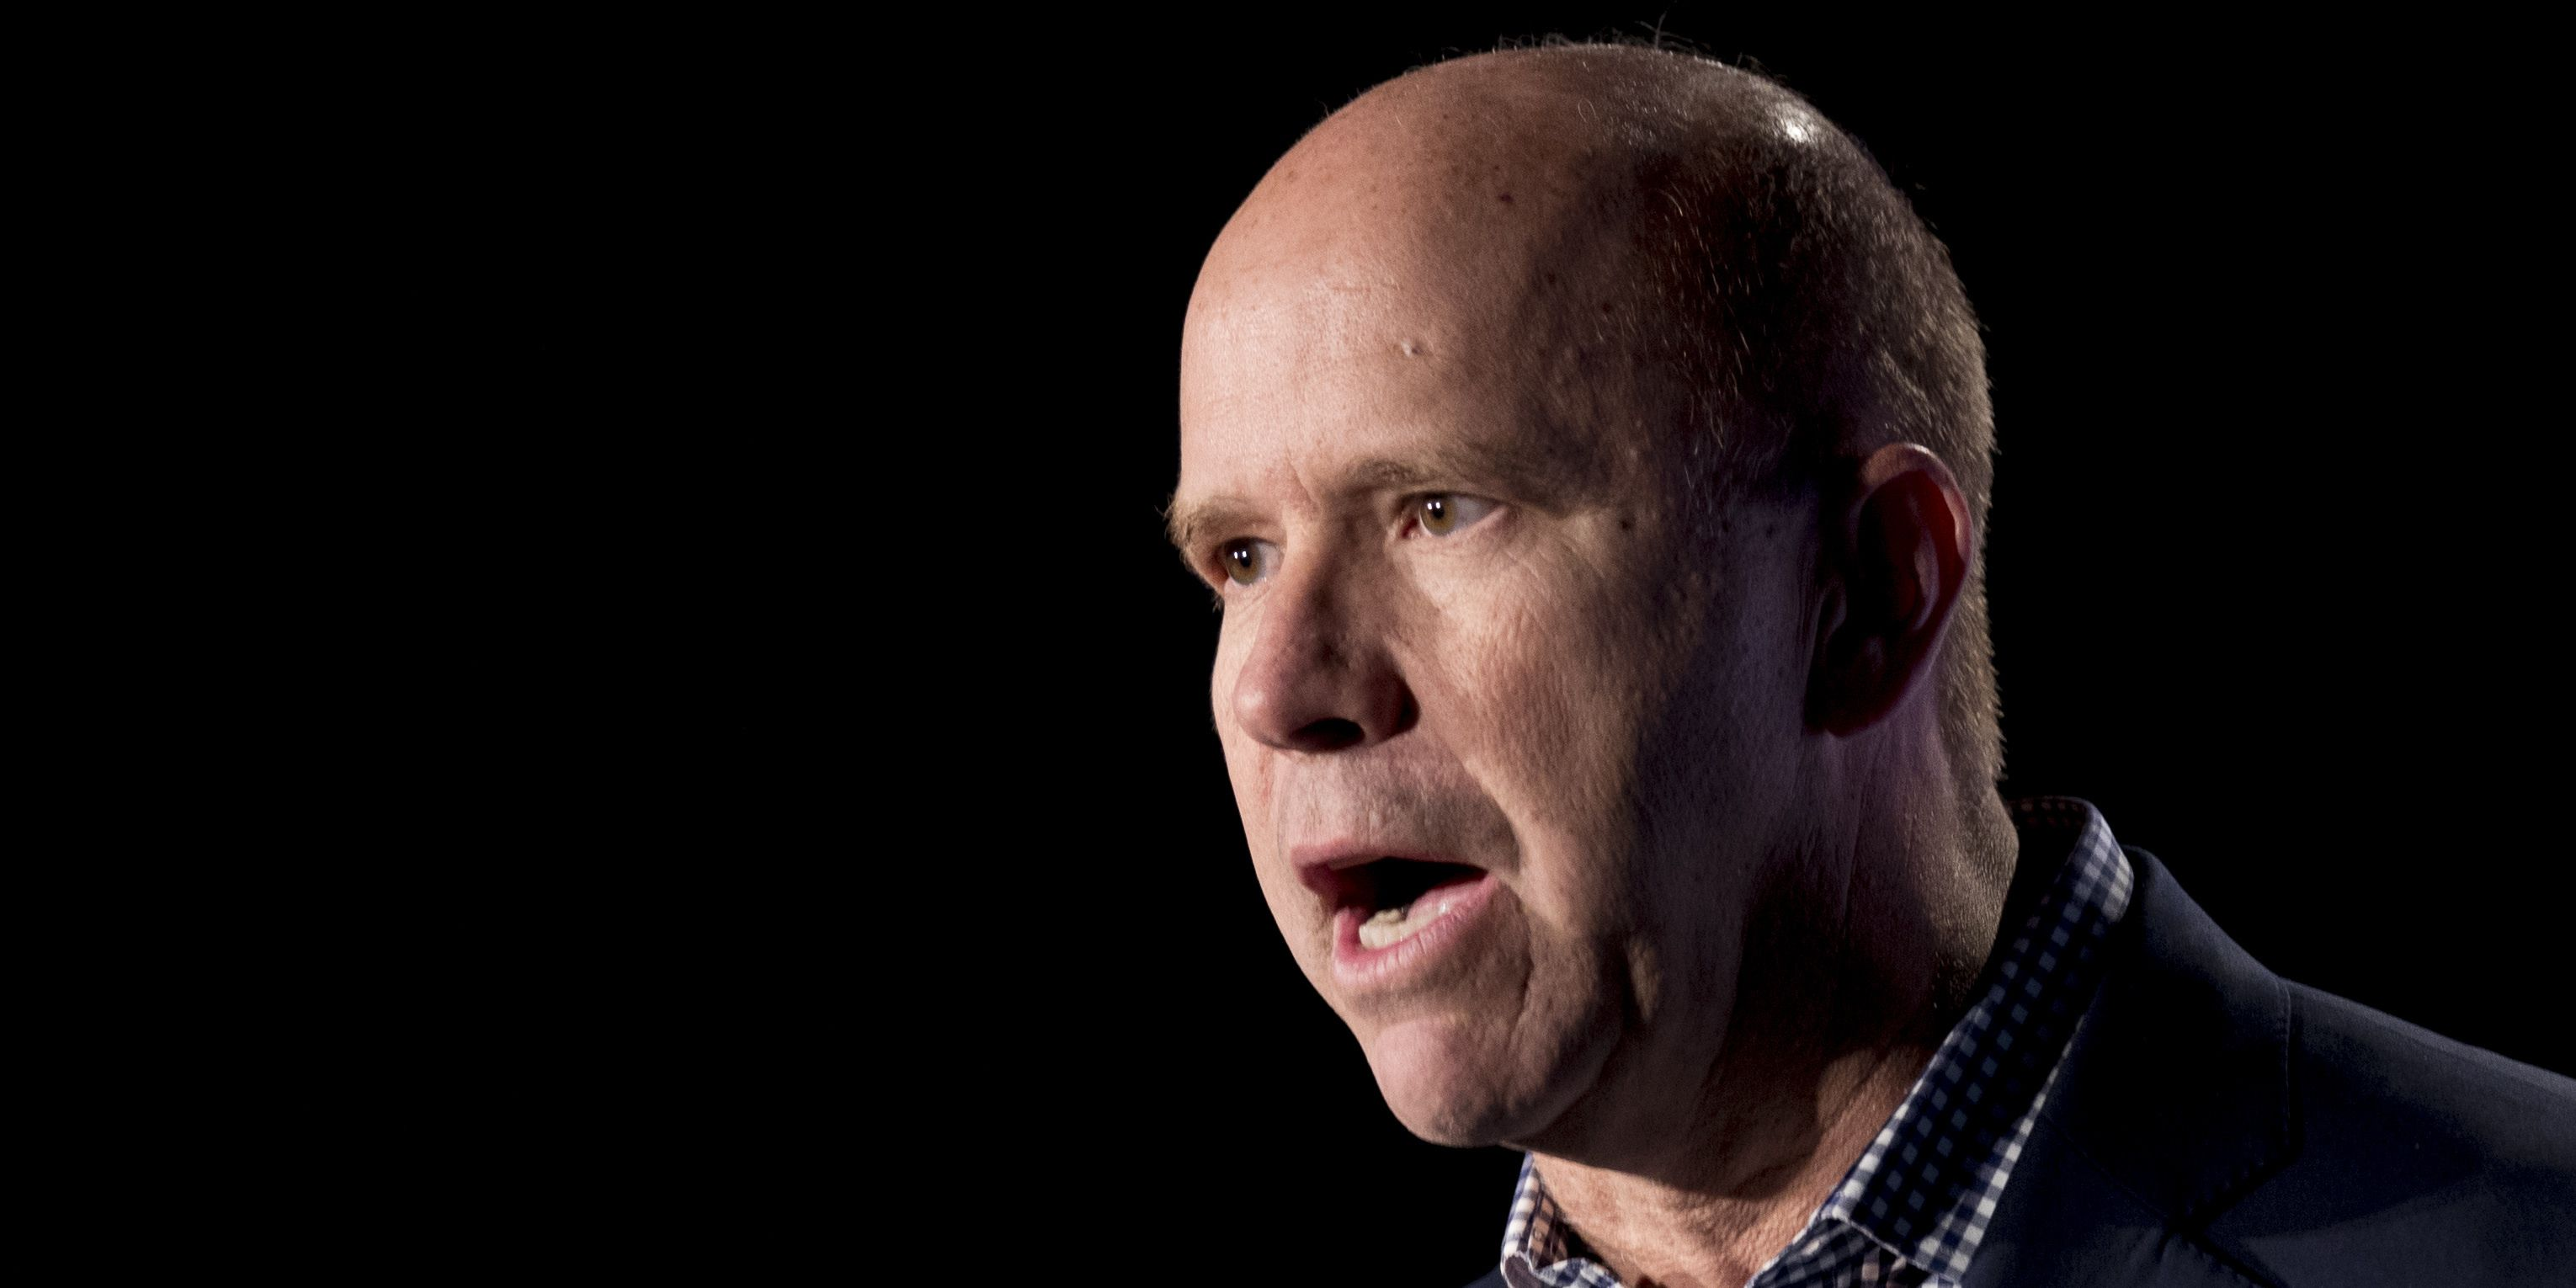 John Delaney withdraws from 2020 presidential race